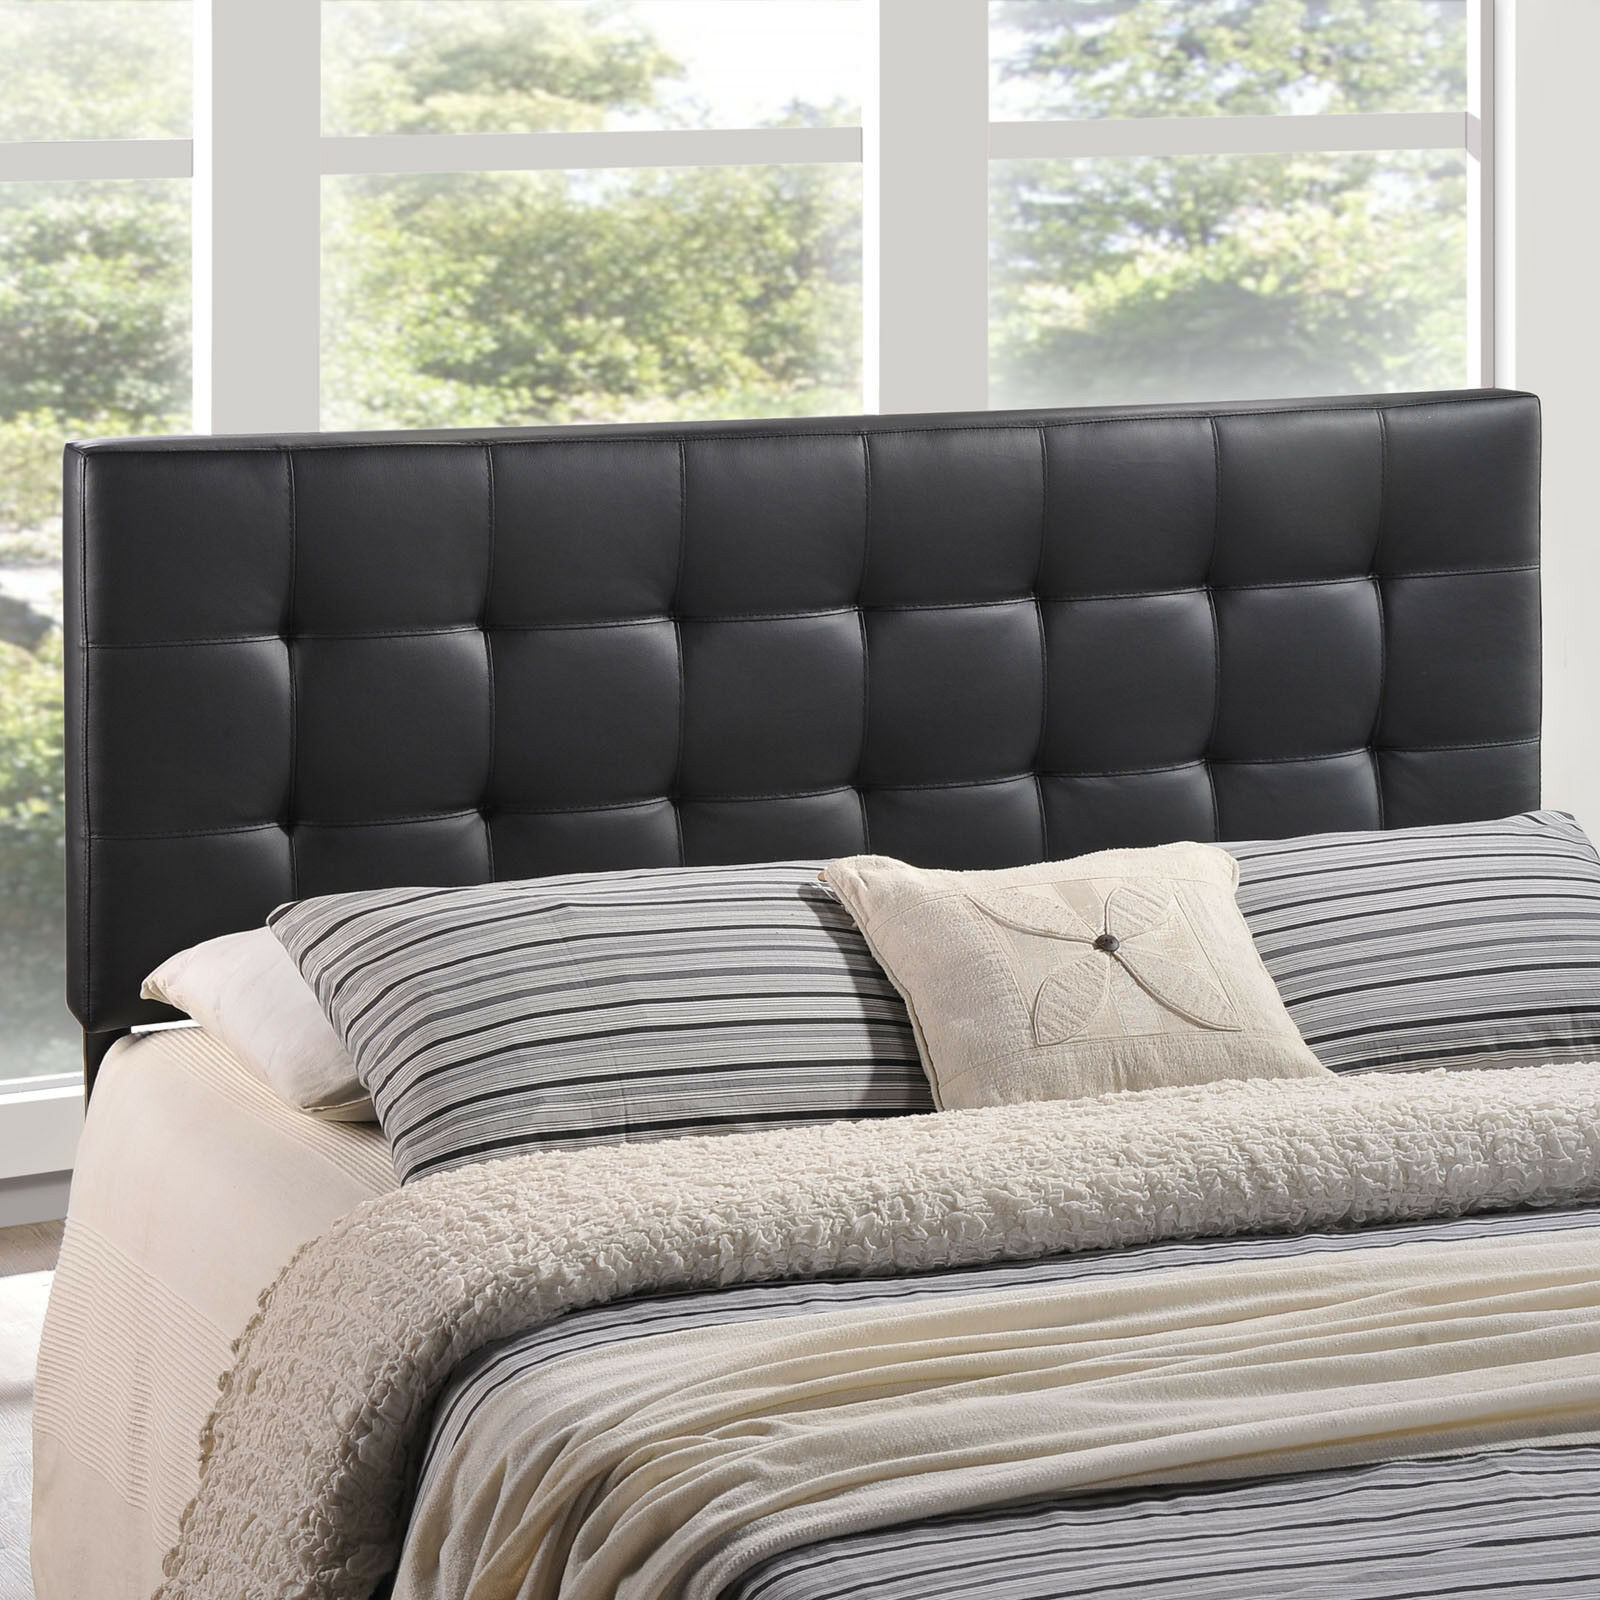 Tufted Upholstered Faux Leather Square King Size Headboard In Black 848387019310 Ebay